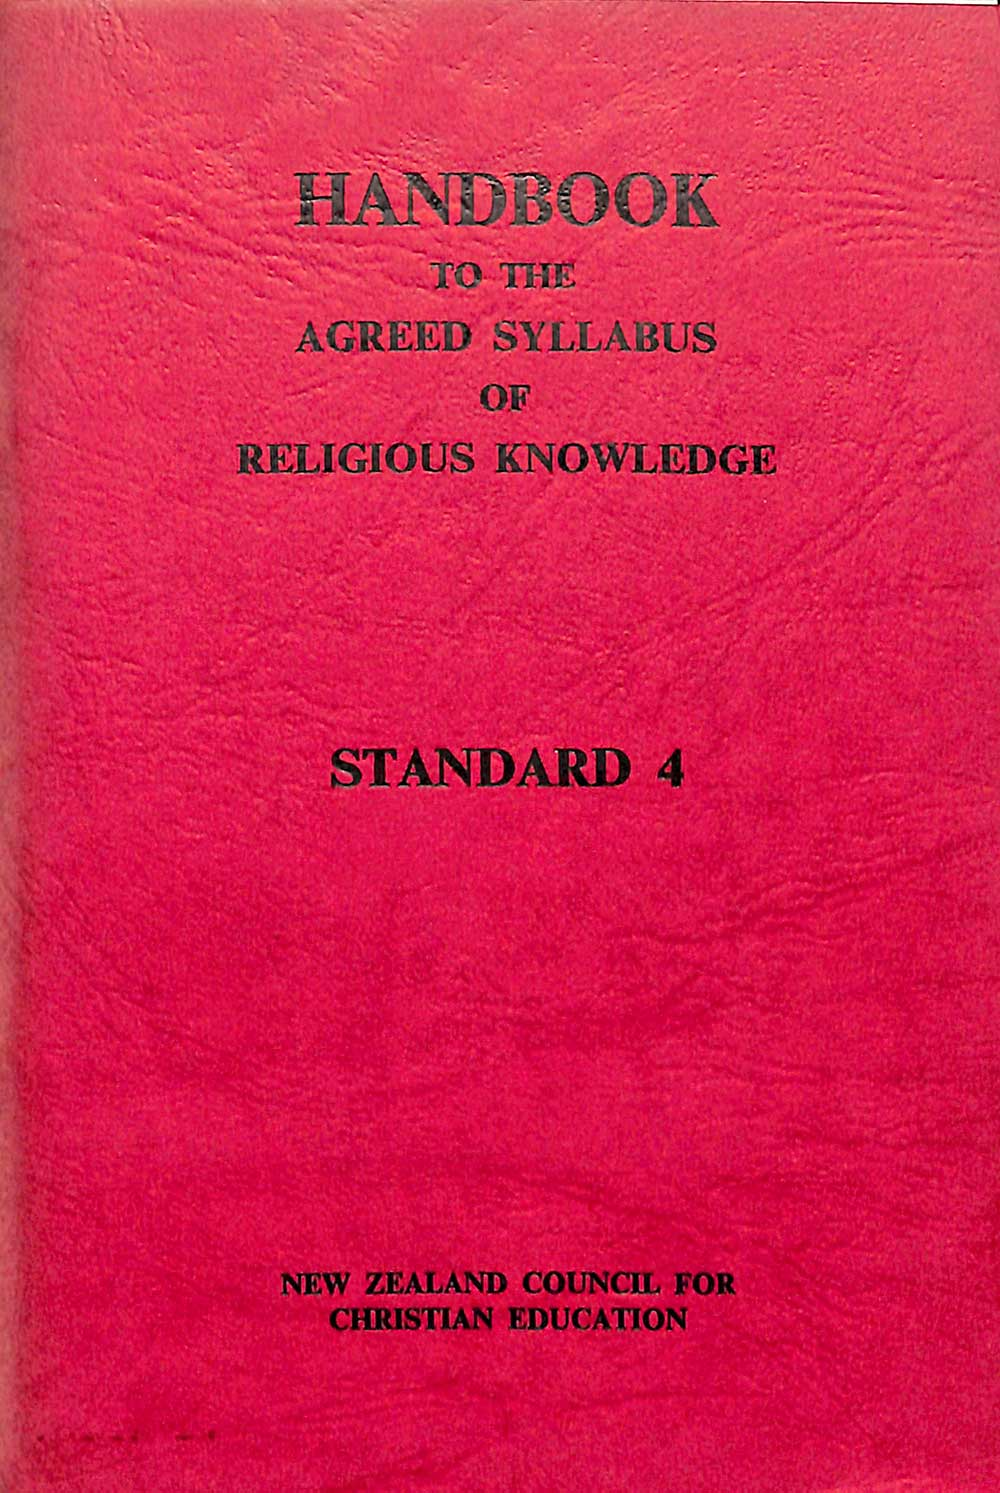 <em>Handbook to the agreed syllabus of religious knowledge. Standard 4.</em> Revised edition. Wellington: A.H. & A.W. Reed for the New Zealand Council for Christian Education, 1962.